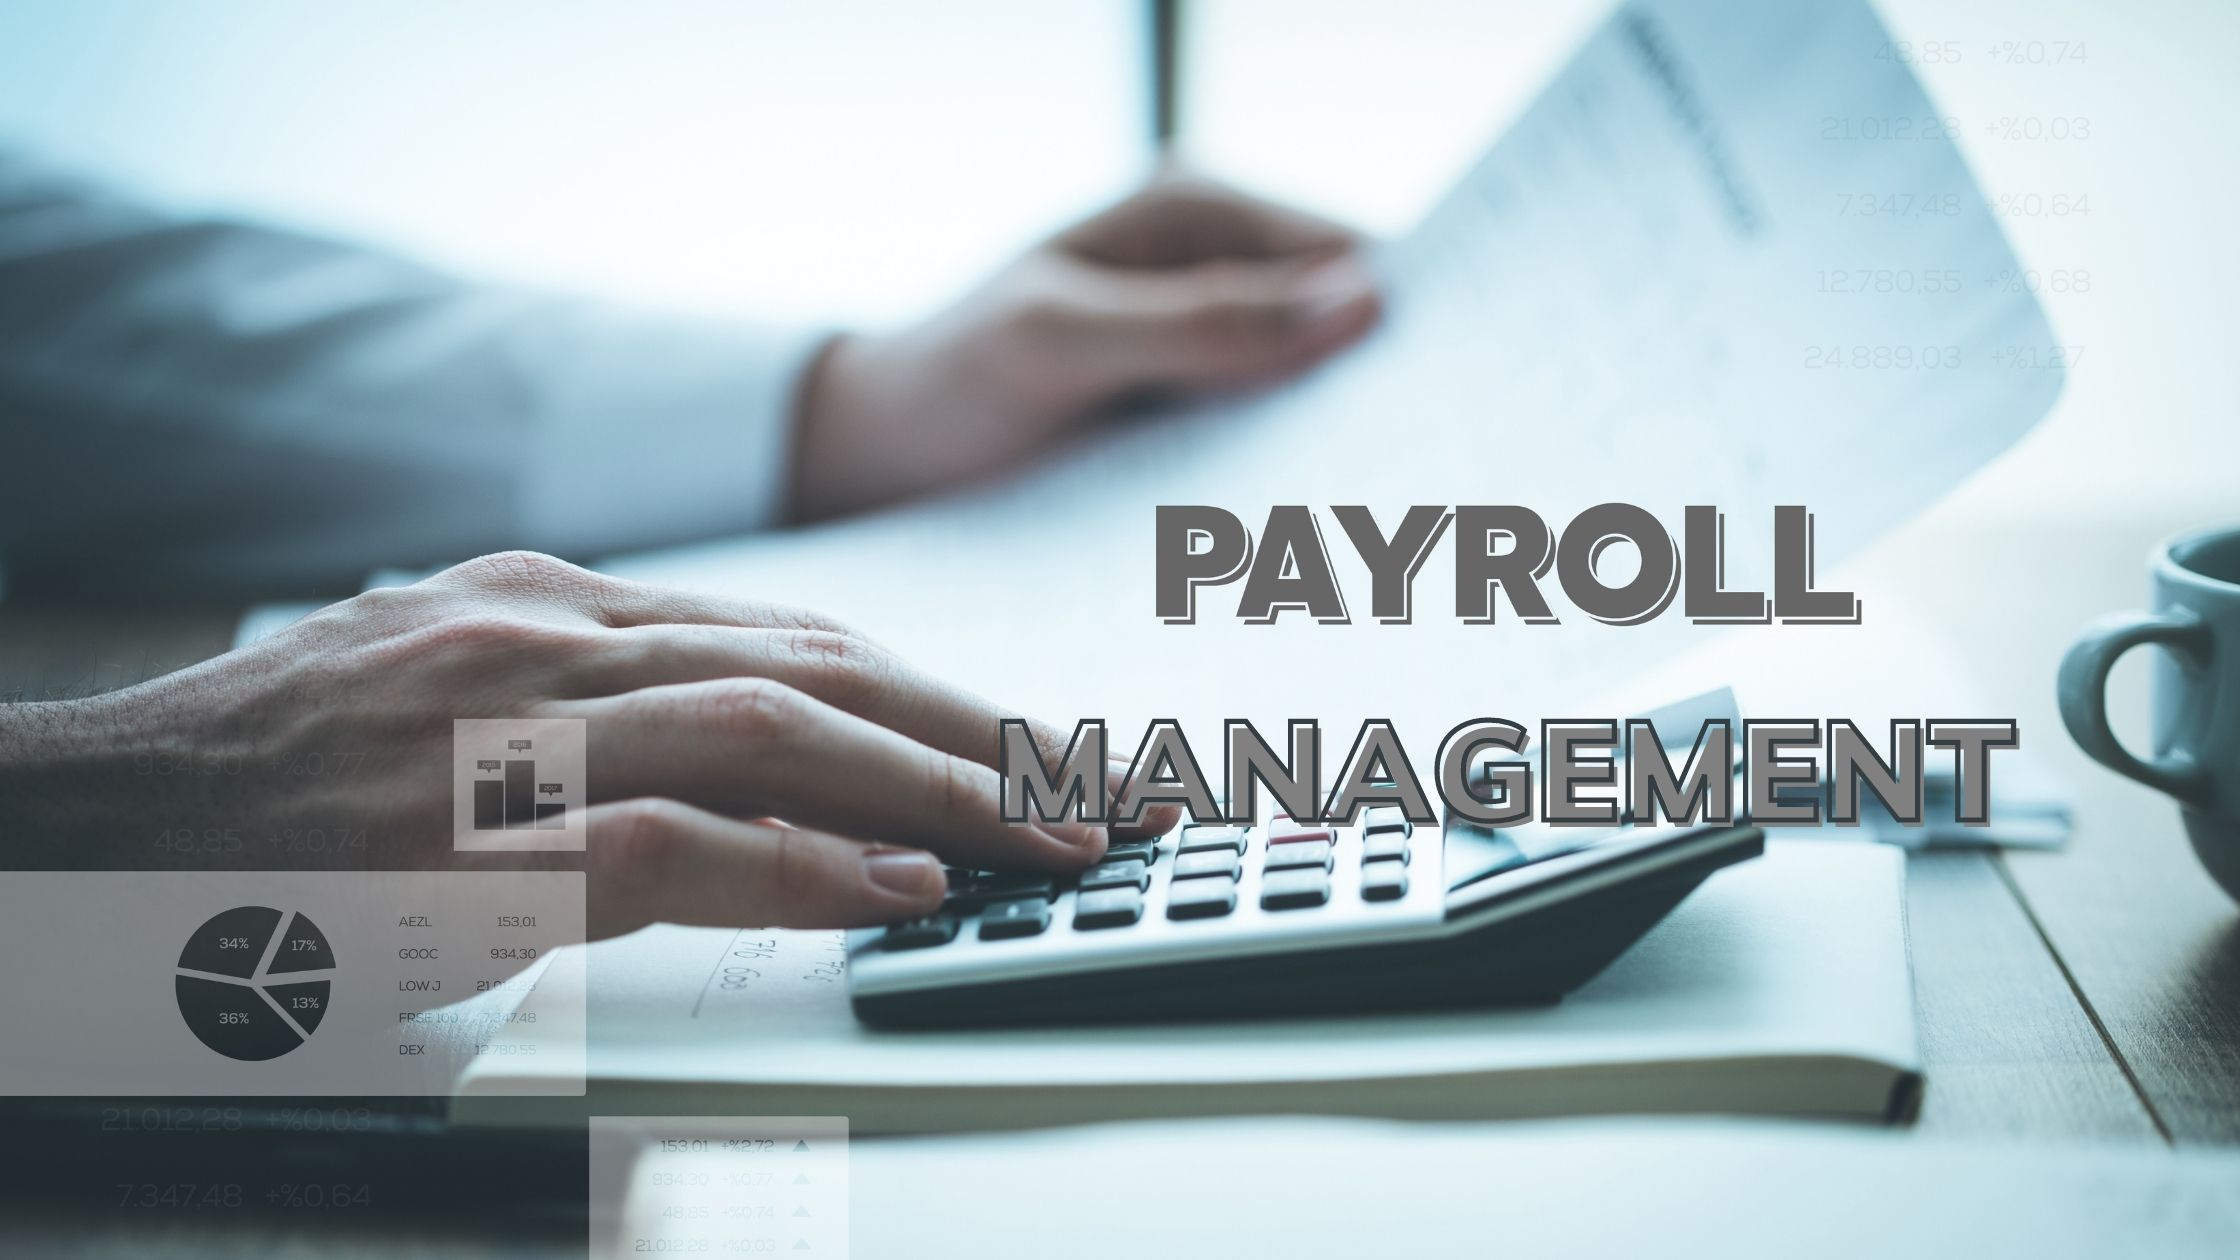 payroll management